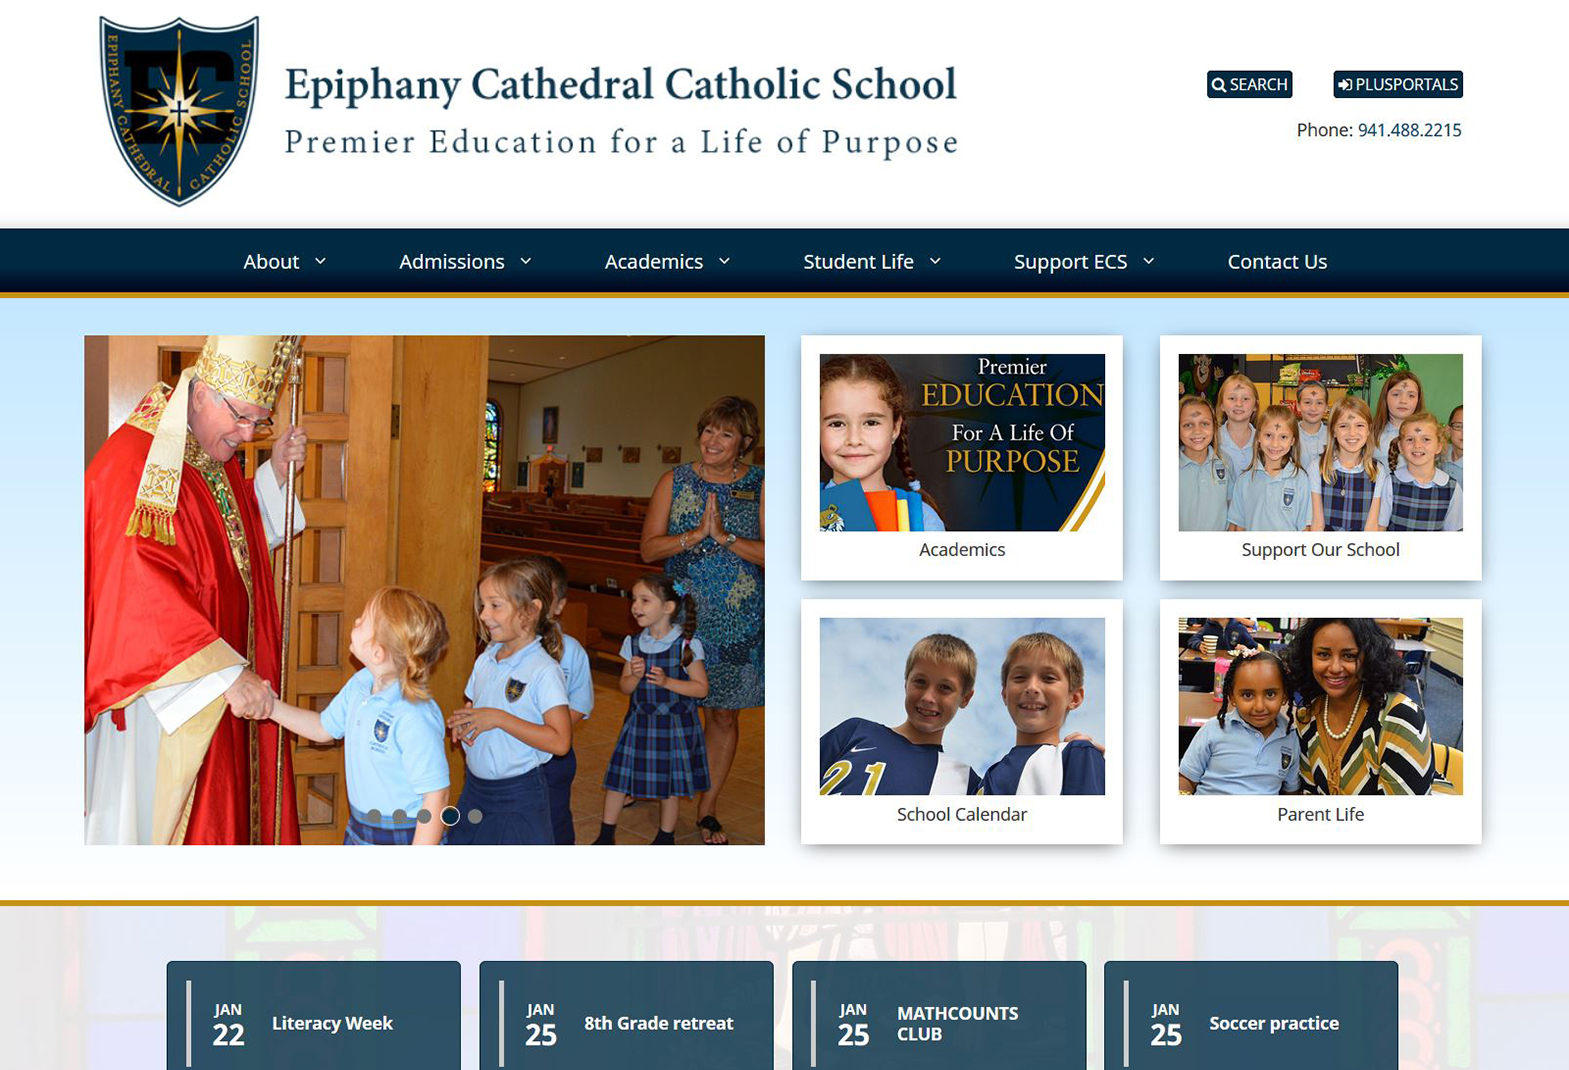 Epiphany Cathedral Catholic School